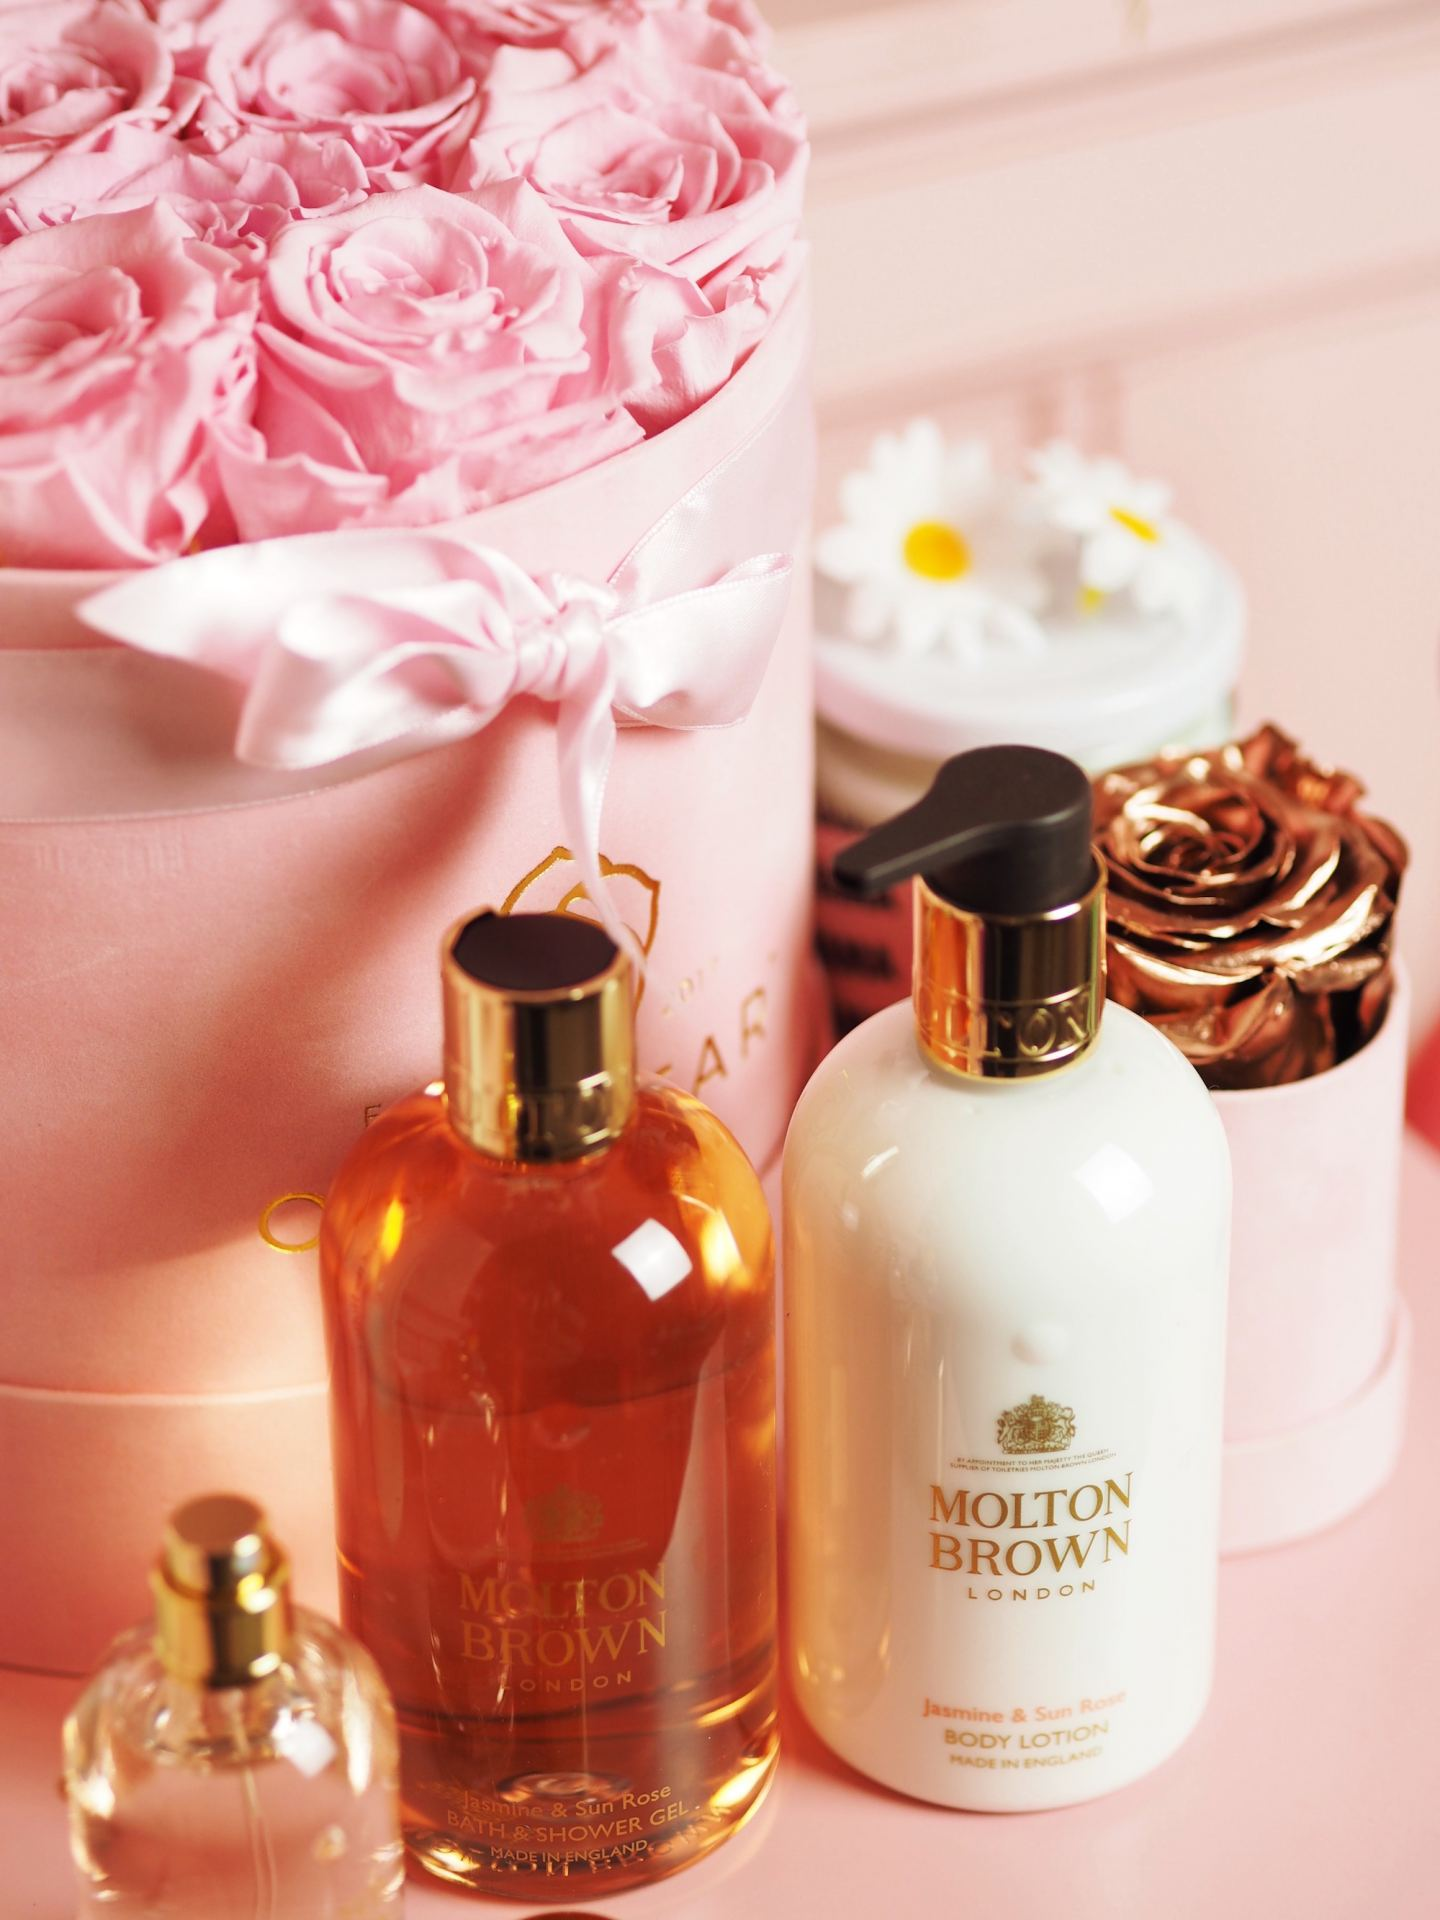 Molton Brown 'Jasmine & Sun Rose' perfume review fragrance